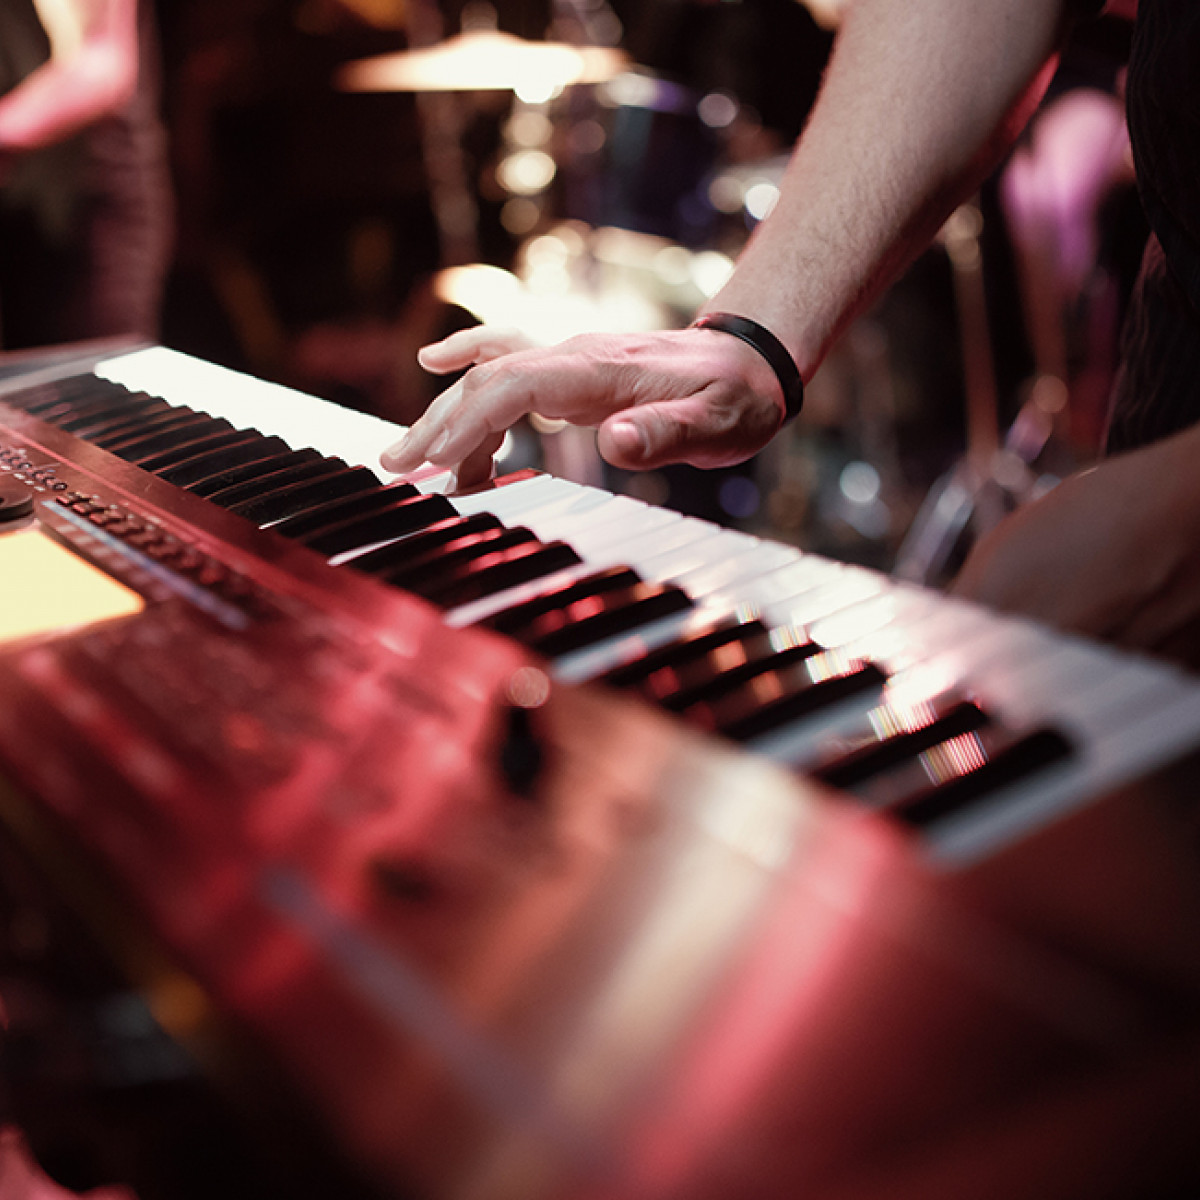 the correlation between jazz musicians and the world of addictive substances